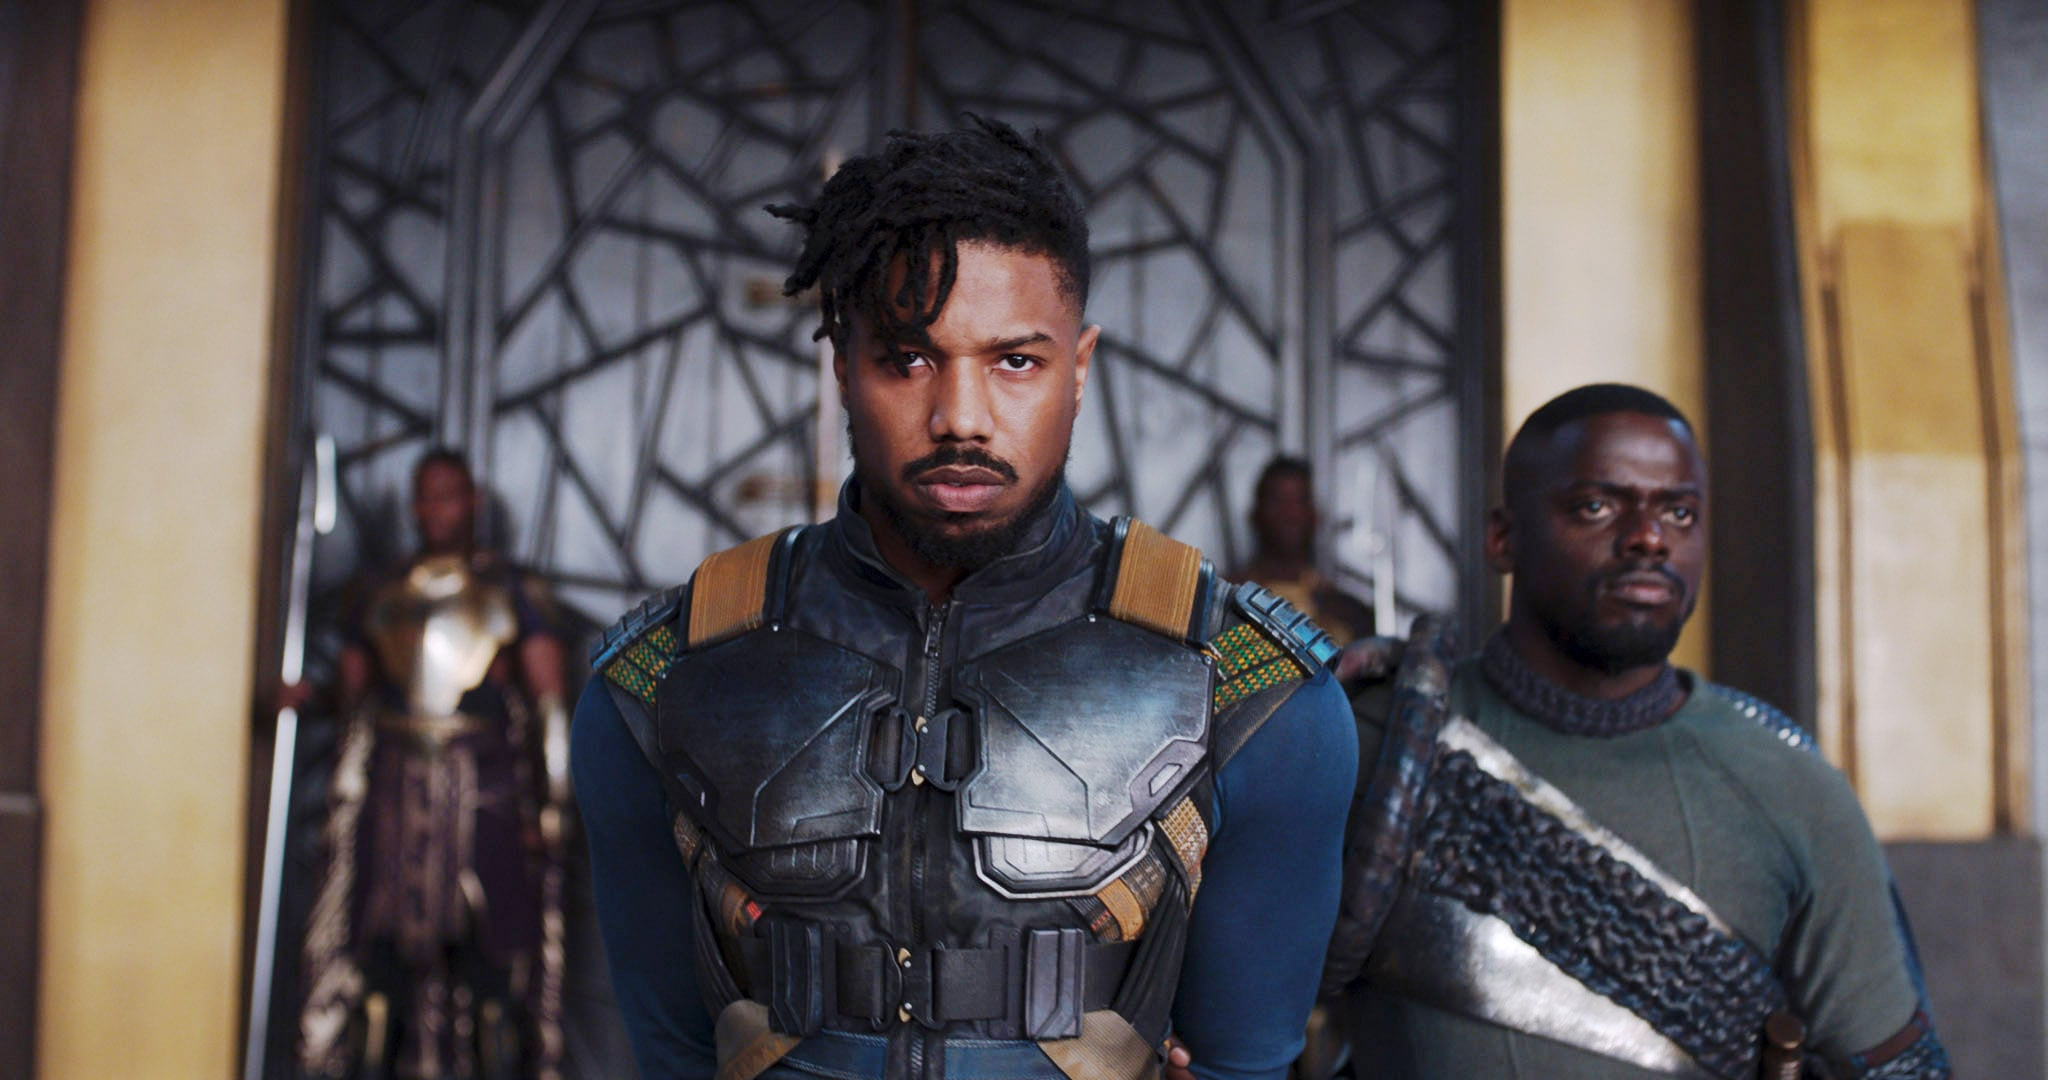 BLACK PANTHER, from left: Michael B. Jordan, Daniel Kaluuya, 2018. Marvel / Walt Disney Studios Motion Pictures / Courtesy Everett Collection &quot;title =&quot; BLACK PANTHER, from left: Michael B. Jordan, Daniel Kaluuya, 2018. Marvel / Walt Disney Studios Motion Pictures / Courtesy Everett Collection &quot;class =&quot; inline &quot;data-nid =&quot; 45725270 &quot;data-image-label =&quot; xxxlarge @ 2x &quot;srcset =&quot; https://media1[ads1].popsugar-assets.com/ files / thumbor / 8Eqsj589I3m3laQJobcv1PDx2Sk / fit-in / 1024x1024 / filters: format_auto - !! -: strip_icc - !! - / 2019/01/28/942 / n / 1922283 / tmp_qBz7A6_71c8671c60791a48_MCDBLPA_EC088.jpg 1024w, https: //media1.popsugar -assets.com/files/thumbor/z8ukbwziNHp3m2r66NYBWHqSa6c/fit-in/2048xorig/filters:format_auto-!!-:strip_icc-!!-/2019/01/28/942/n/1922283/tmp_qBz7A6_71c8671c60791a48_MCDBLPA_EC088.jpg 2048w &quot;/&gt; </p> <p> Black Panther </strong> is having quite the week. It took home a big win at the SAG Awards on Sunday, Disney CEO Bob Iger revealed that Marvel&#39;s groundbreaking movie will return to theaters in February in honor of Black History Month </p> <p> The critically acclaimed, Oscar-nominated movie &#8211; which is the first Marvel movie to be nominated for best picture, FYI &#8211; will be back in theaters from Feb . 1-7. Chadwick Boseman, Michael B. Jordan, Danai Gurira, and Lupita Nyong&#39;o will be able to see the movie with you, <em> can </em> ensure that you don&#39;t have to shell out for any ticket prices. That&#39;s right &#8211; tickets will be free! So now you officially have no excuse for why you haven&#39;t seen it yet. (Just kidding &#8211; is there anyone on planet Earth who hasn&#39;t watched it?!) </p> <p> In Iger&#39;s announcement of the good news, it also revealed that the studio is bringing the movie back to theaters to celebrate not only Black History Month but also its $ 1.5 million donation to UNCF, which is the country&#39;s largest minority education organiz